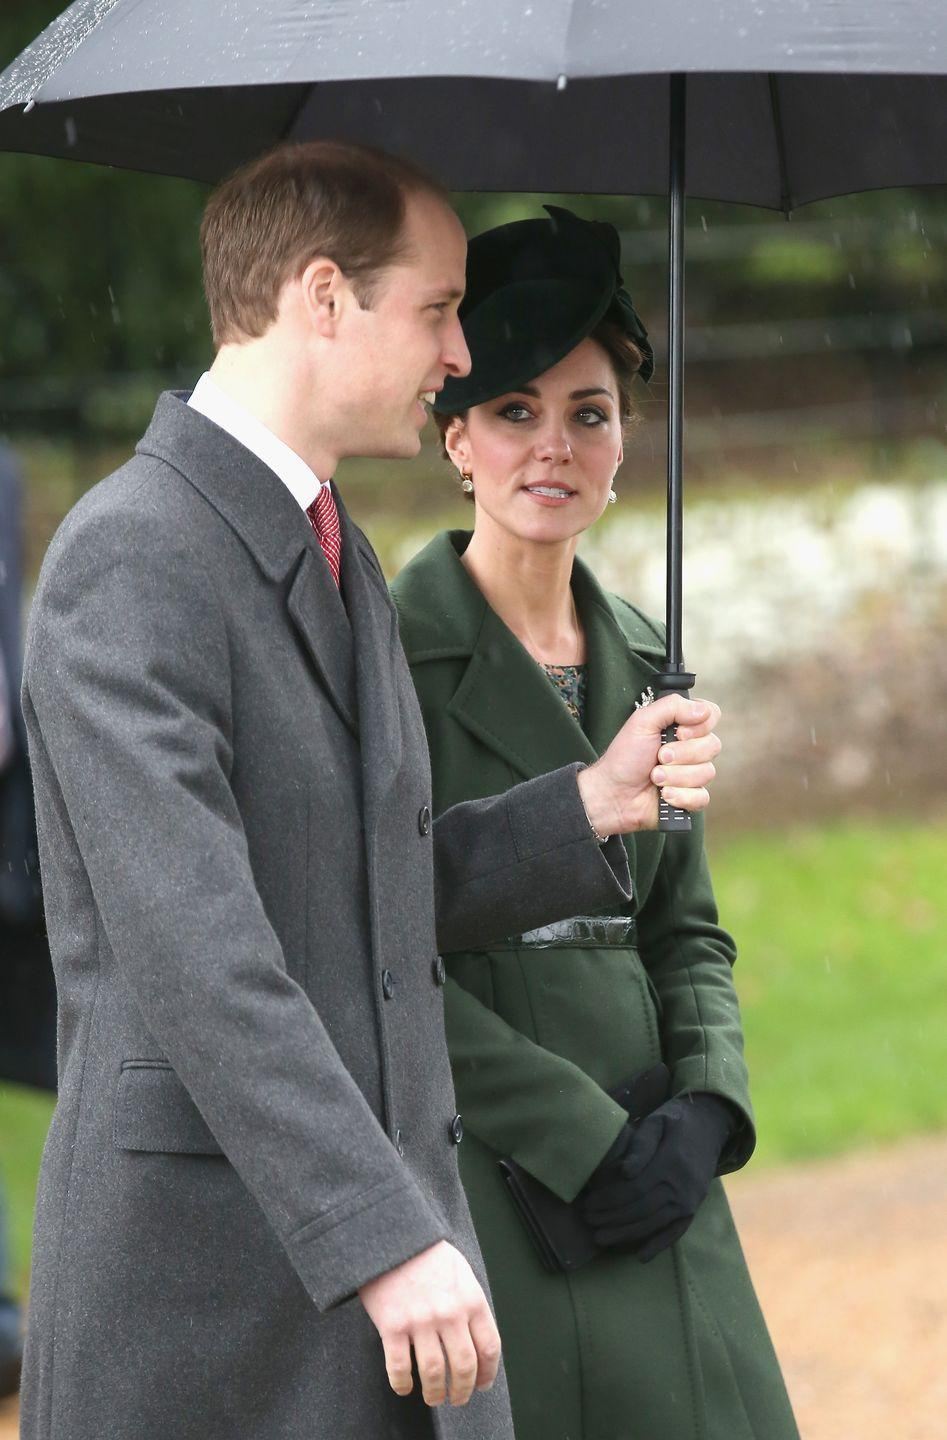 <p>This is a different dark green coat by Sportmax (it's always nice to have more than one dark green coat option!), introduced to the world on Christmas at Sandringham in King's Lynn, England. Will held the umbrella, as he usually does. </p>